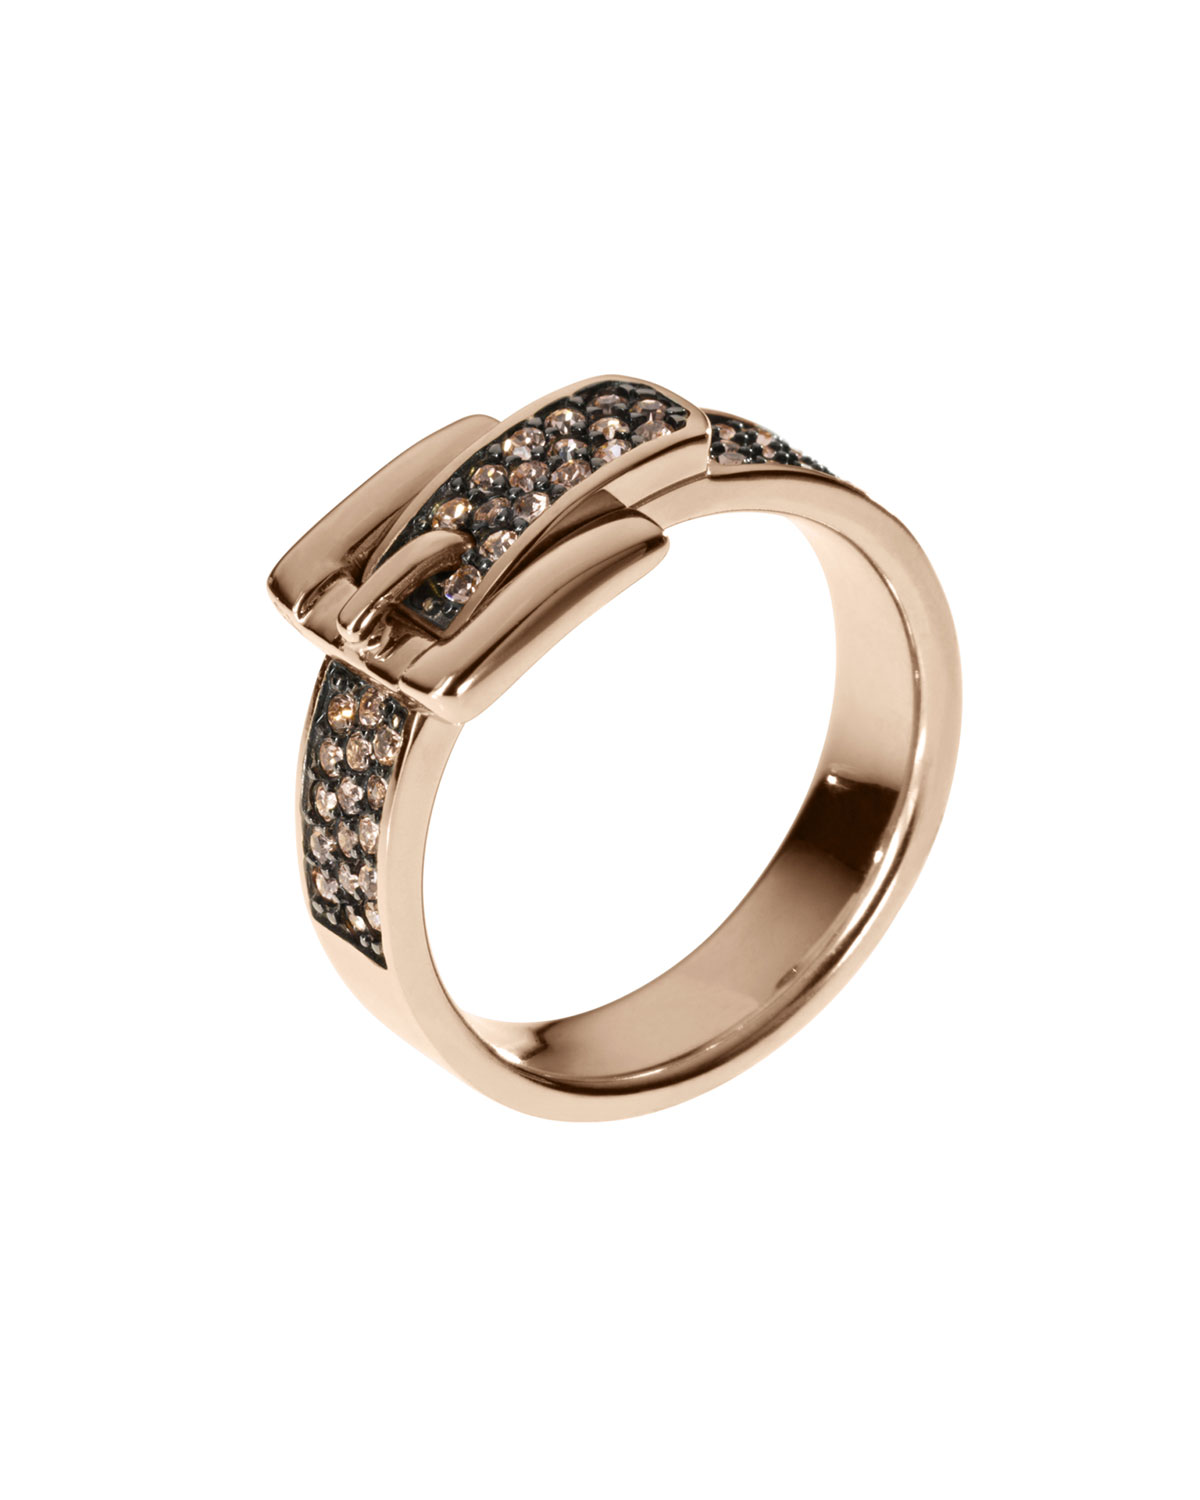 rose gold ring michael kors pave rose gold ring. Black Bedroom Furniture Sets. Home Design Ideas